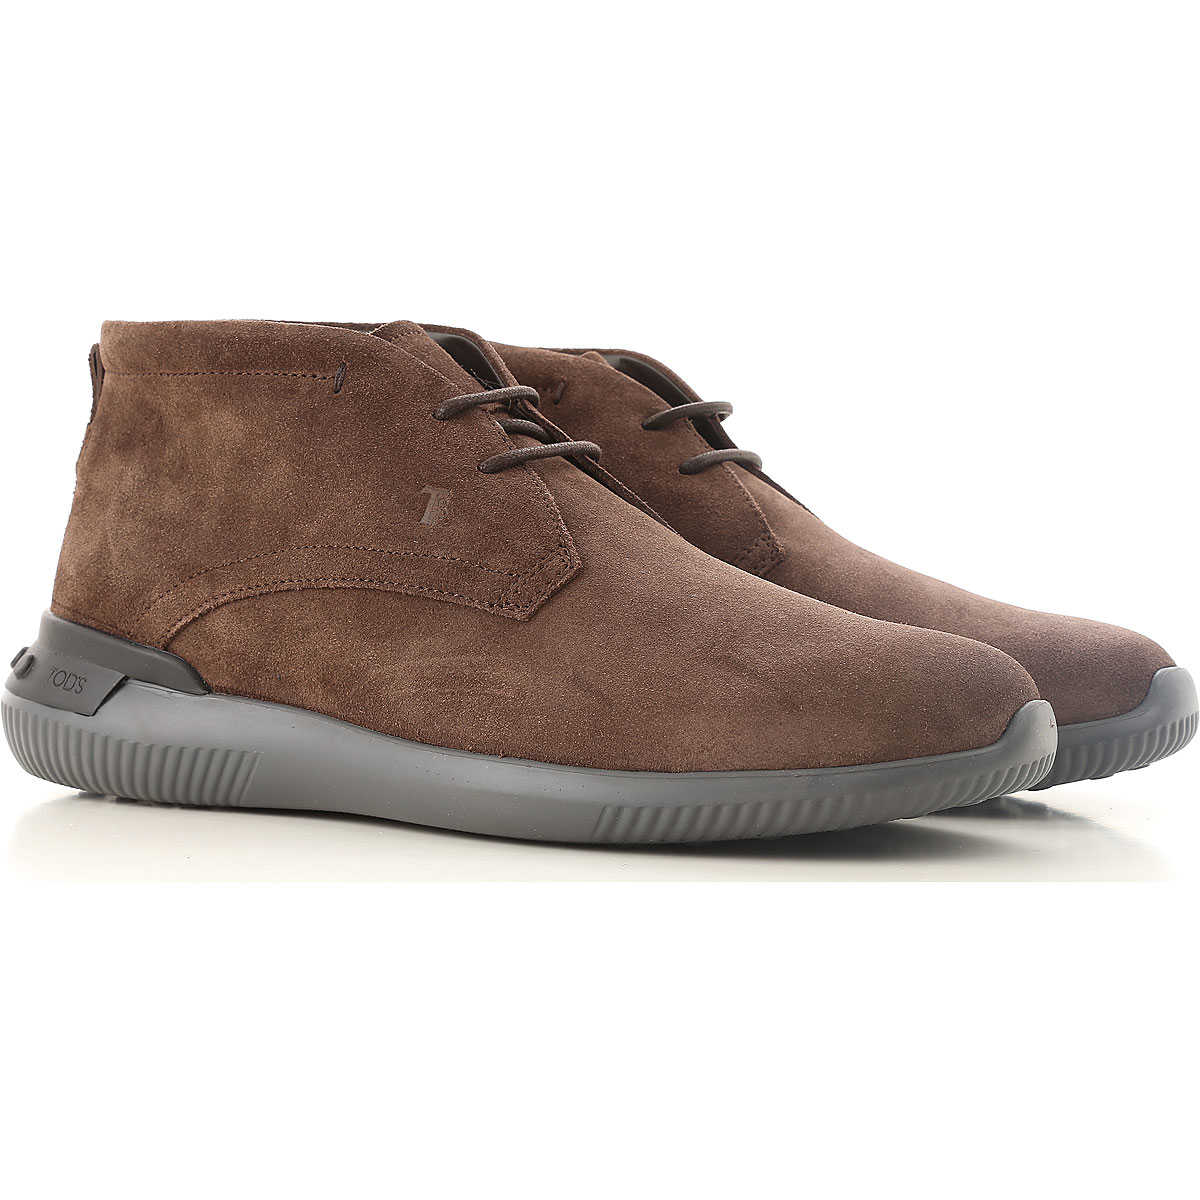 Tods Boots for Men Booties On Sale USA - GOOFASH